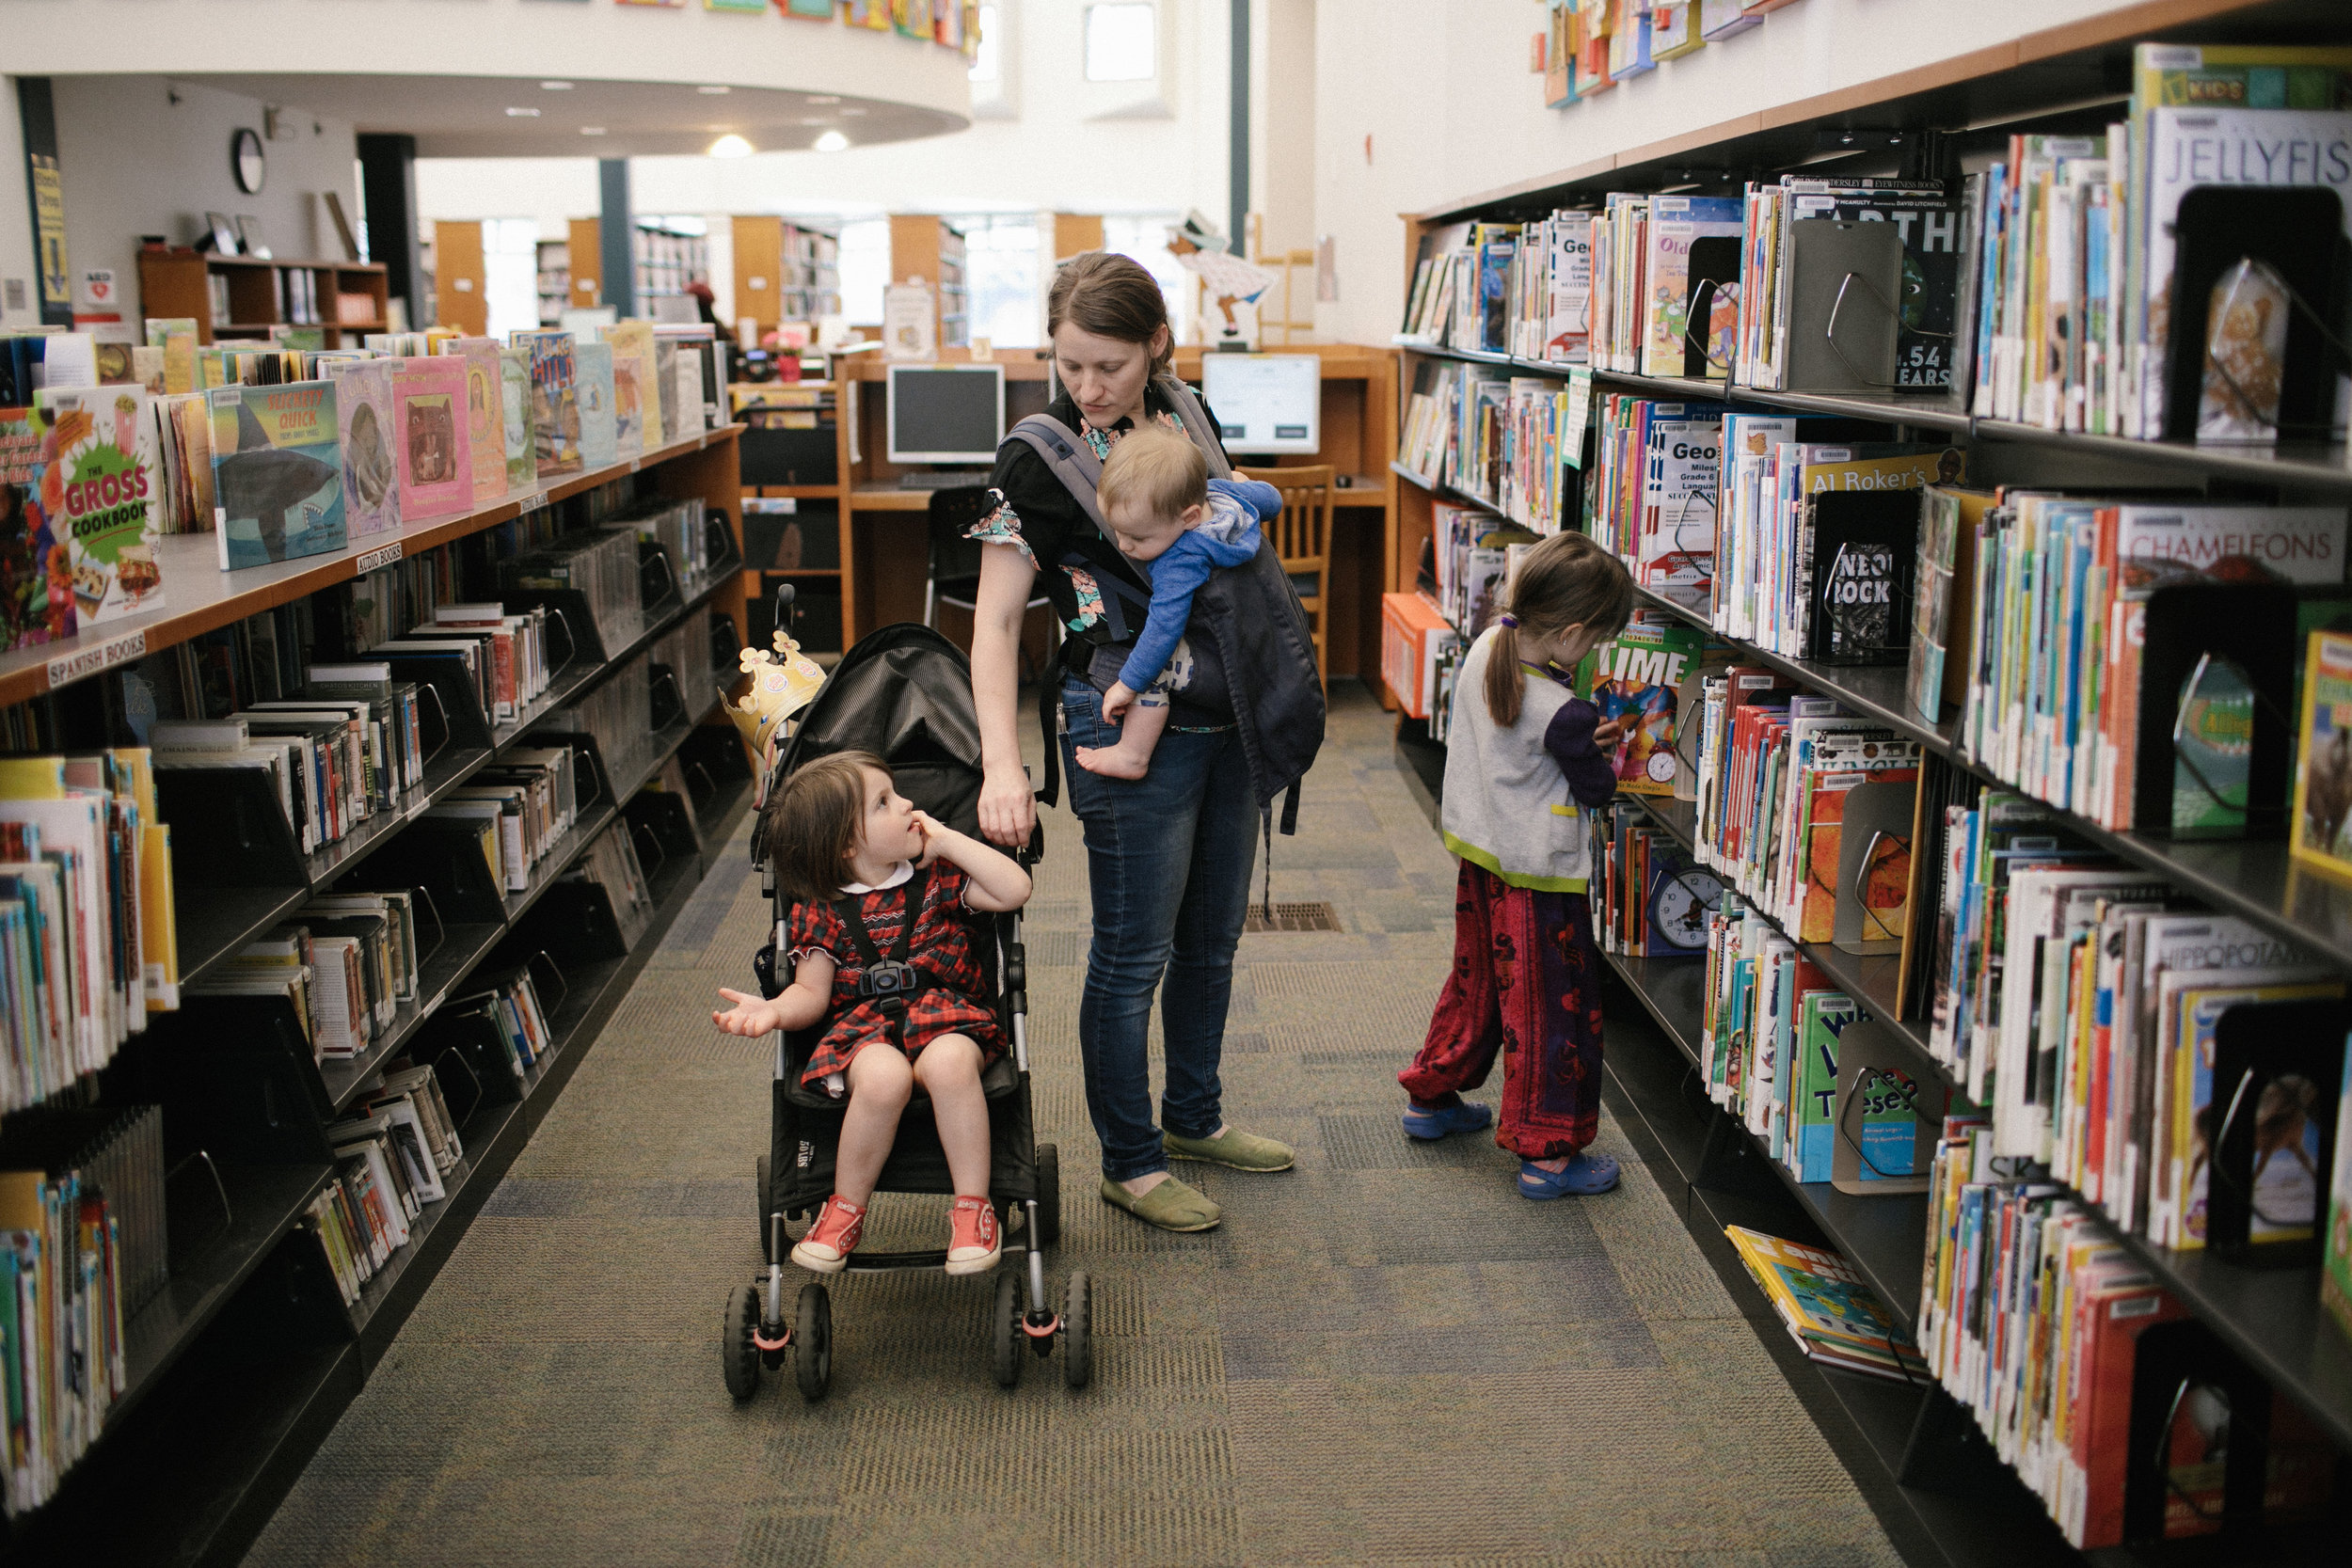 a mother wears a baby in the library as a child sits in a stroller and another one looks at a book